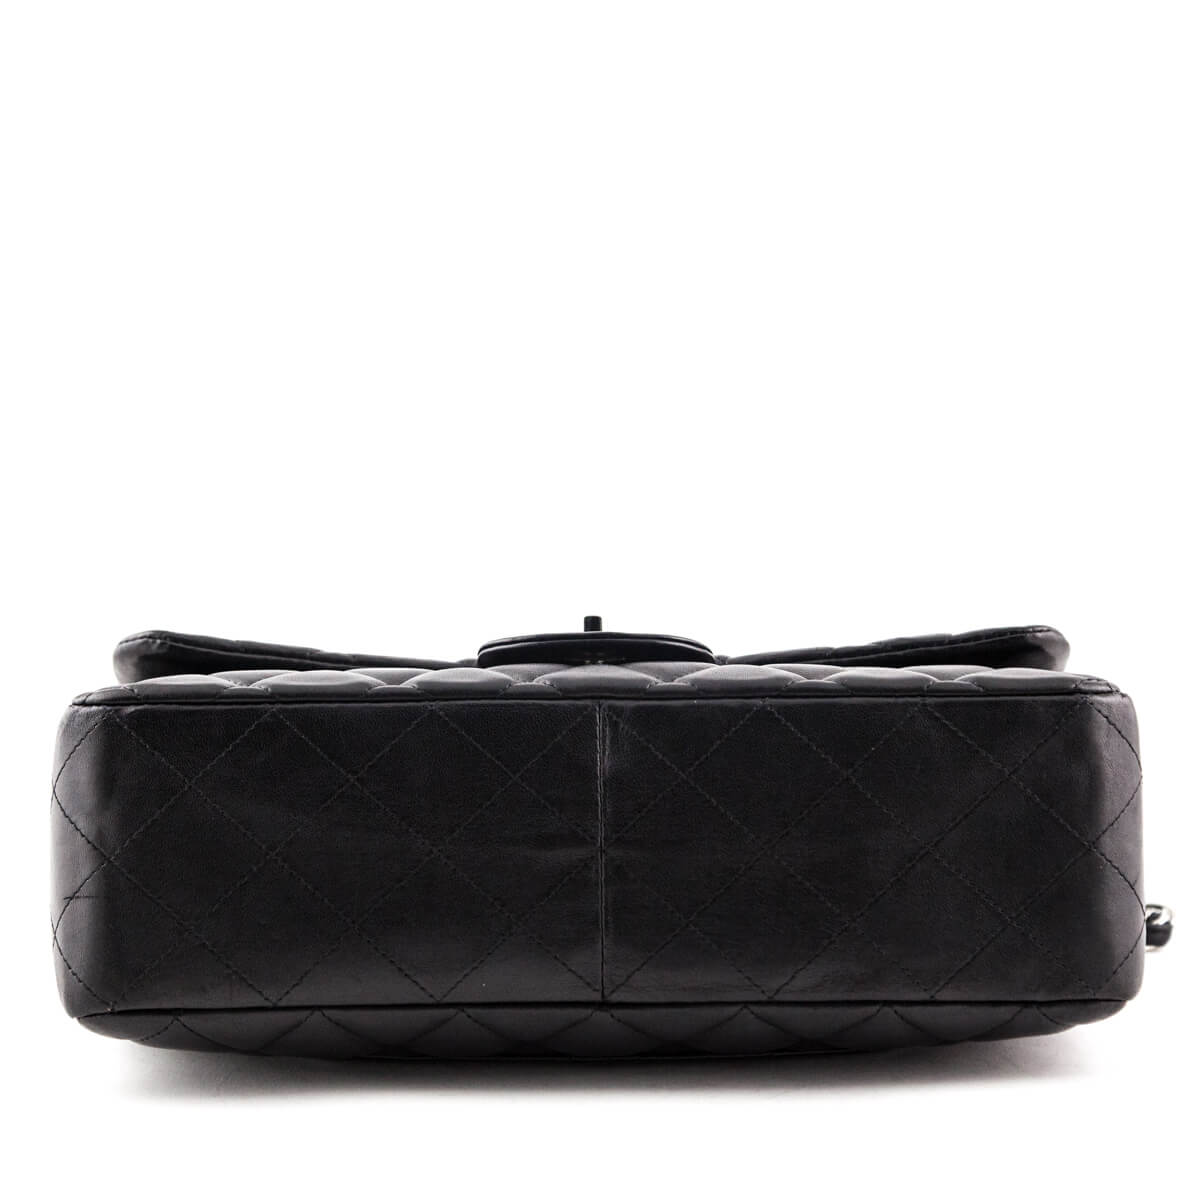 37902afbdfbf ... Chanel Black Lambskin Jumbo Classic Single Flap Bag SHW - LOVE that BAG  - Preowned Authentic ...